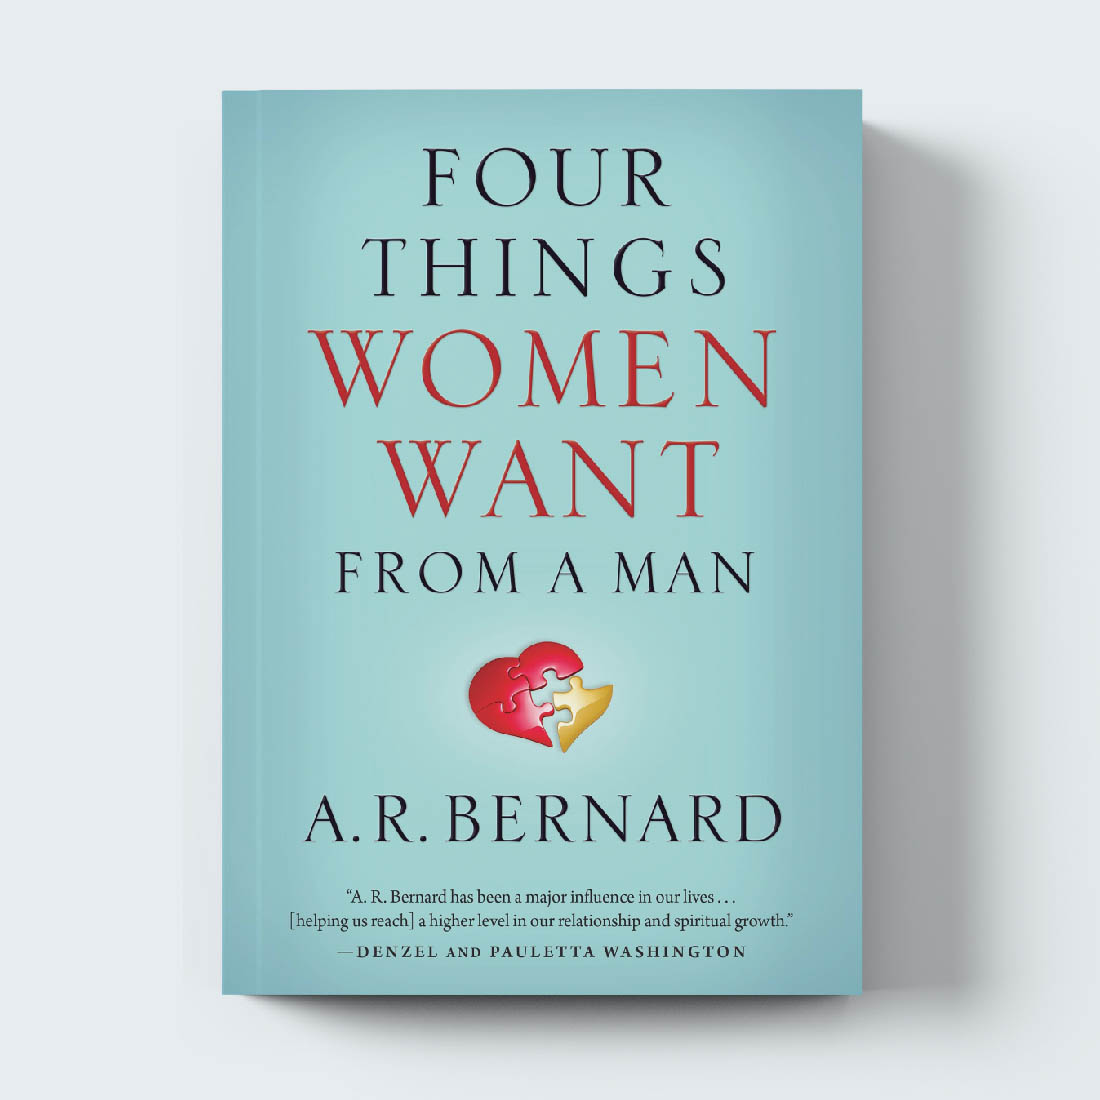 AR_Bernard_Reading_List_Four_Things_Women_Want_From_a_Man.jpg